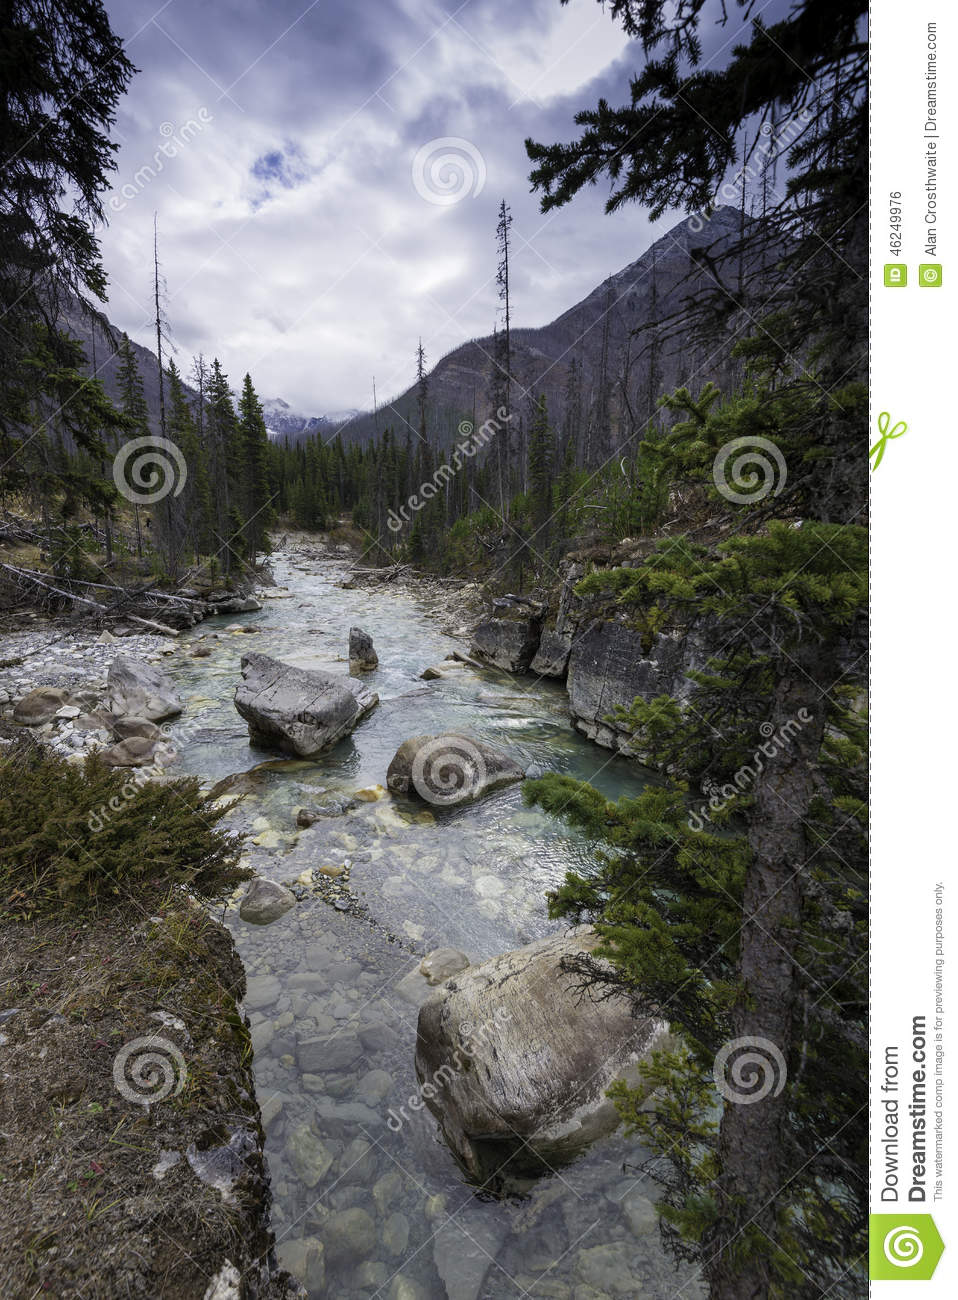 ... the river and rocks in Marble Canyon, Kootenay National Park, Canada